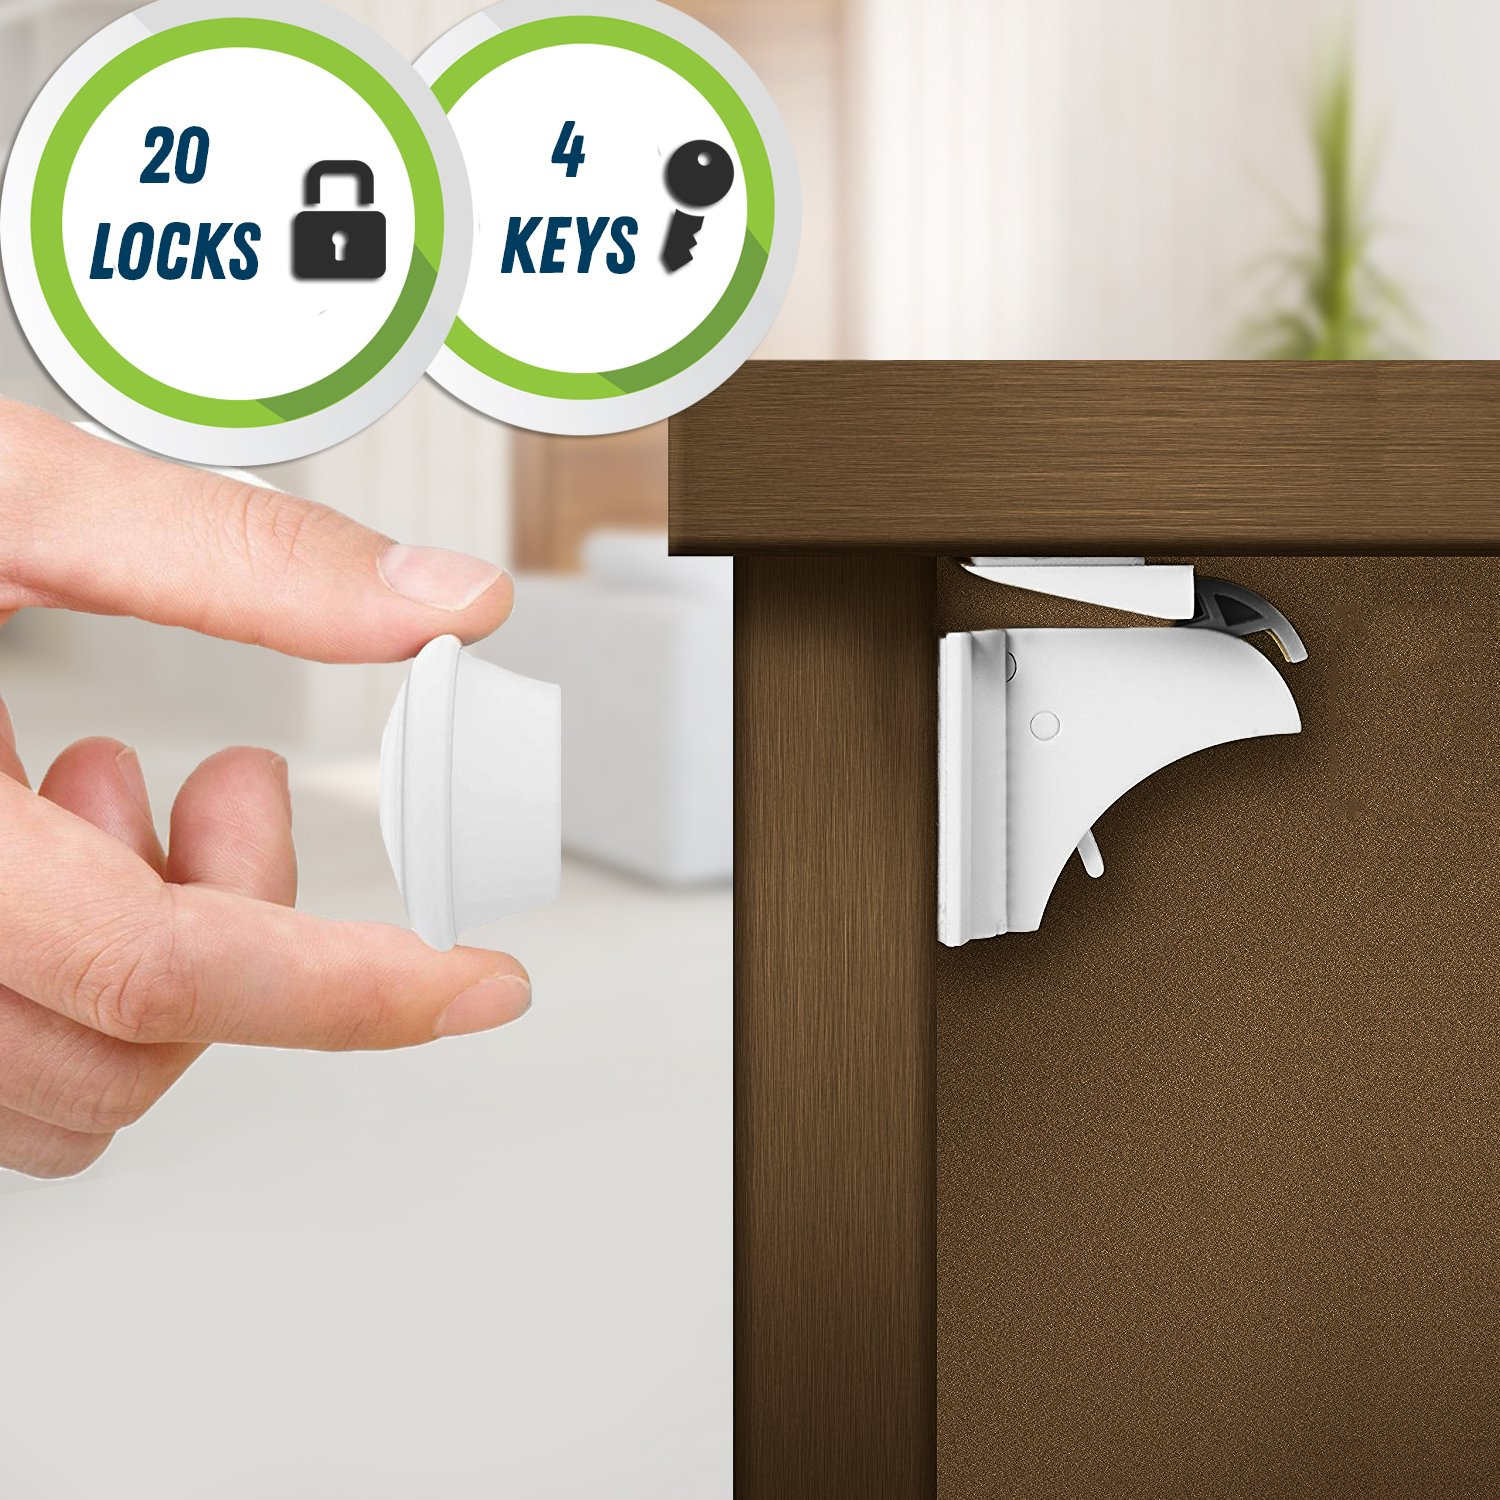 20 Locks, 4 Keys - Magnetic Safety Locks for Cupboard and Draws, including extra 3M adhesive strips - Child and Baby Proof (the biggest kit on Amazon!) Matana